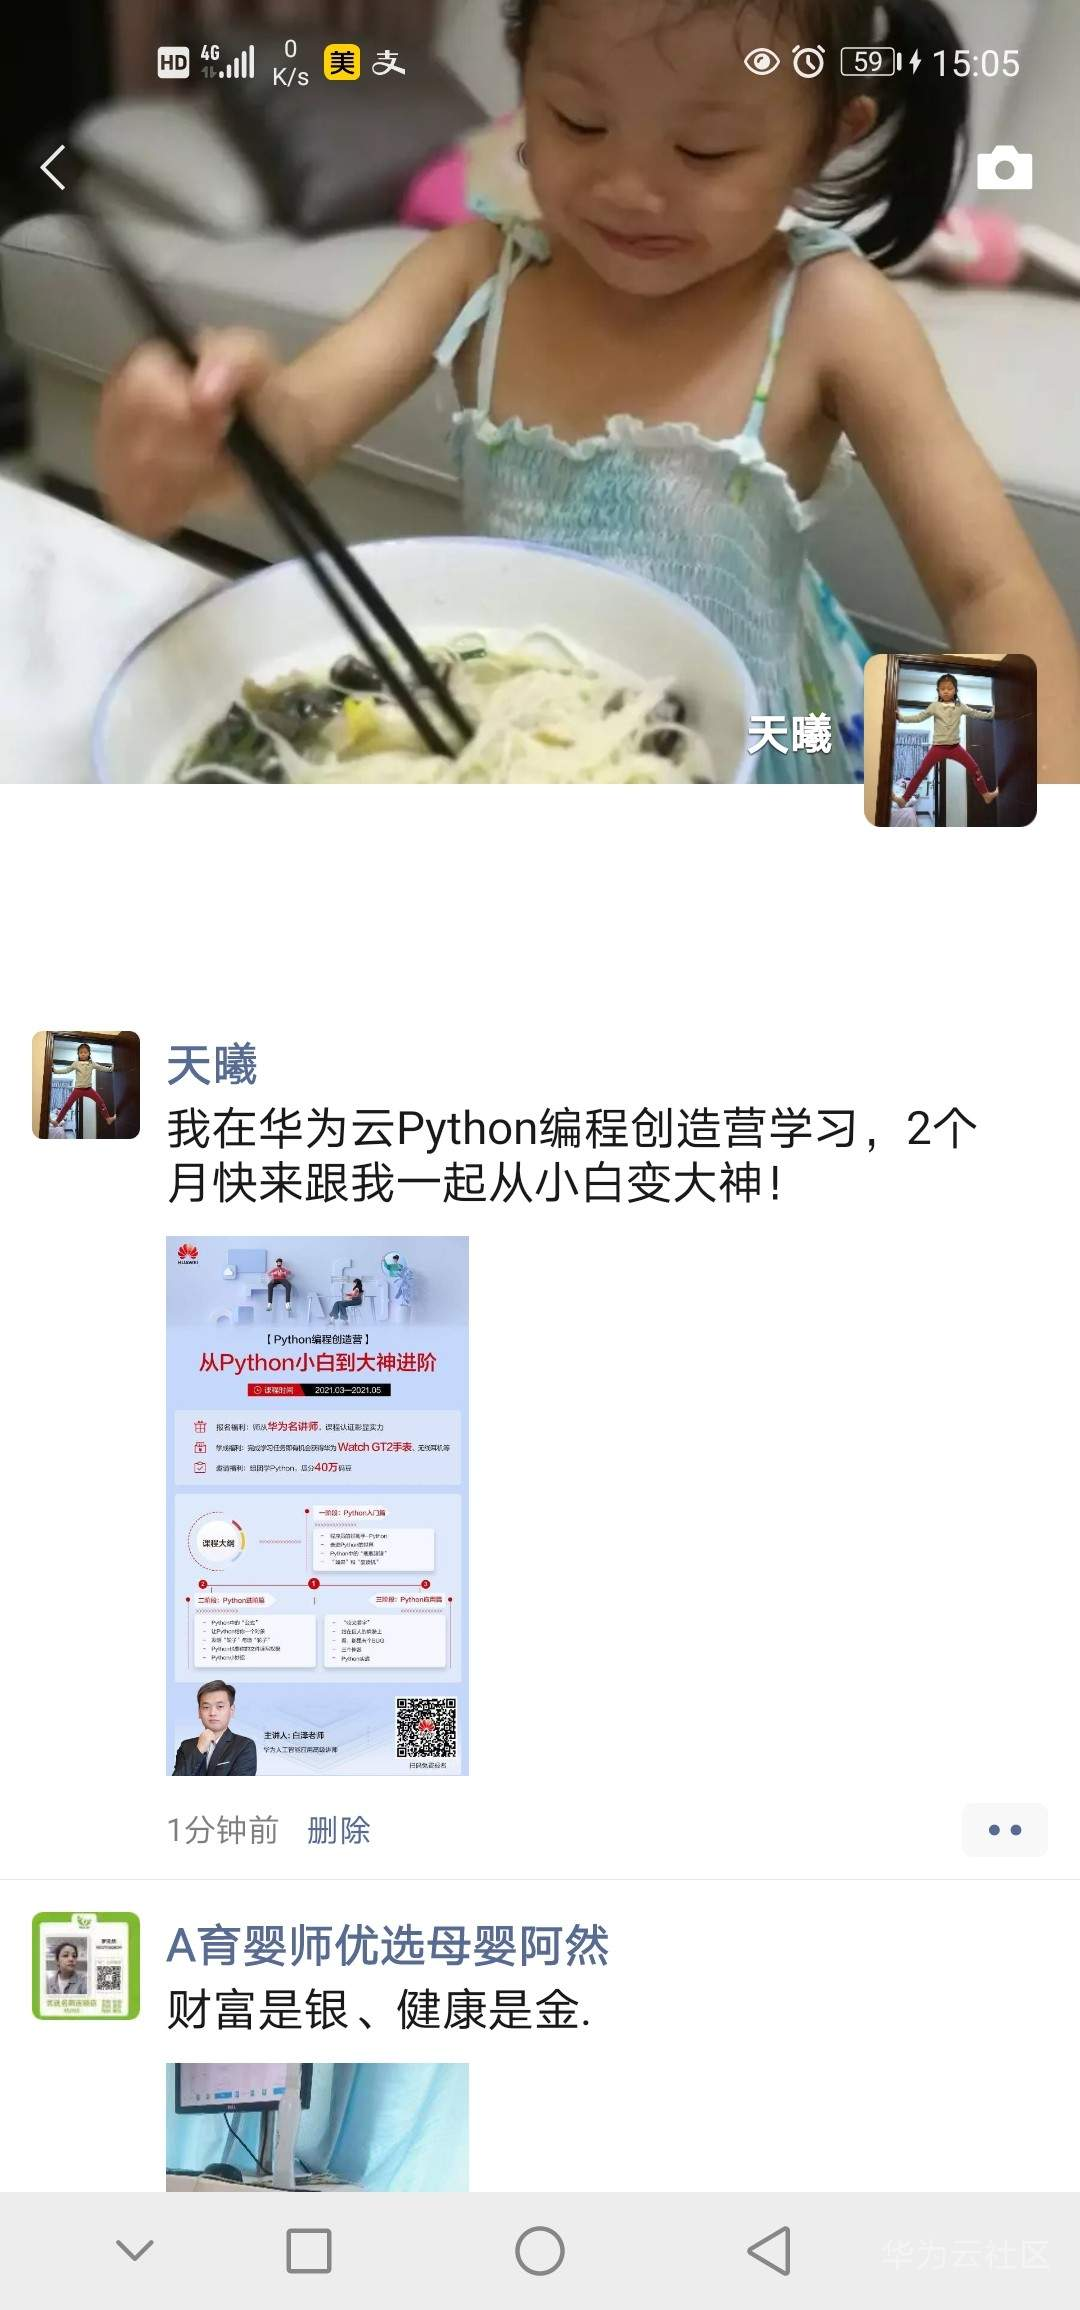 Screenshot_20210302_150509_com.tencent.mm.jpg